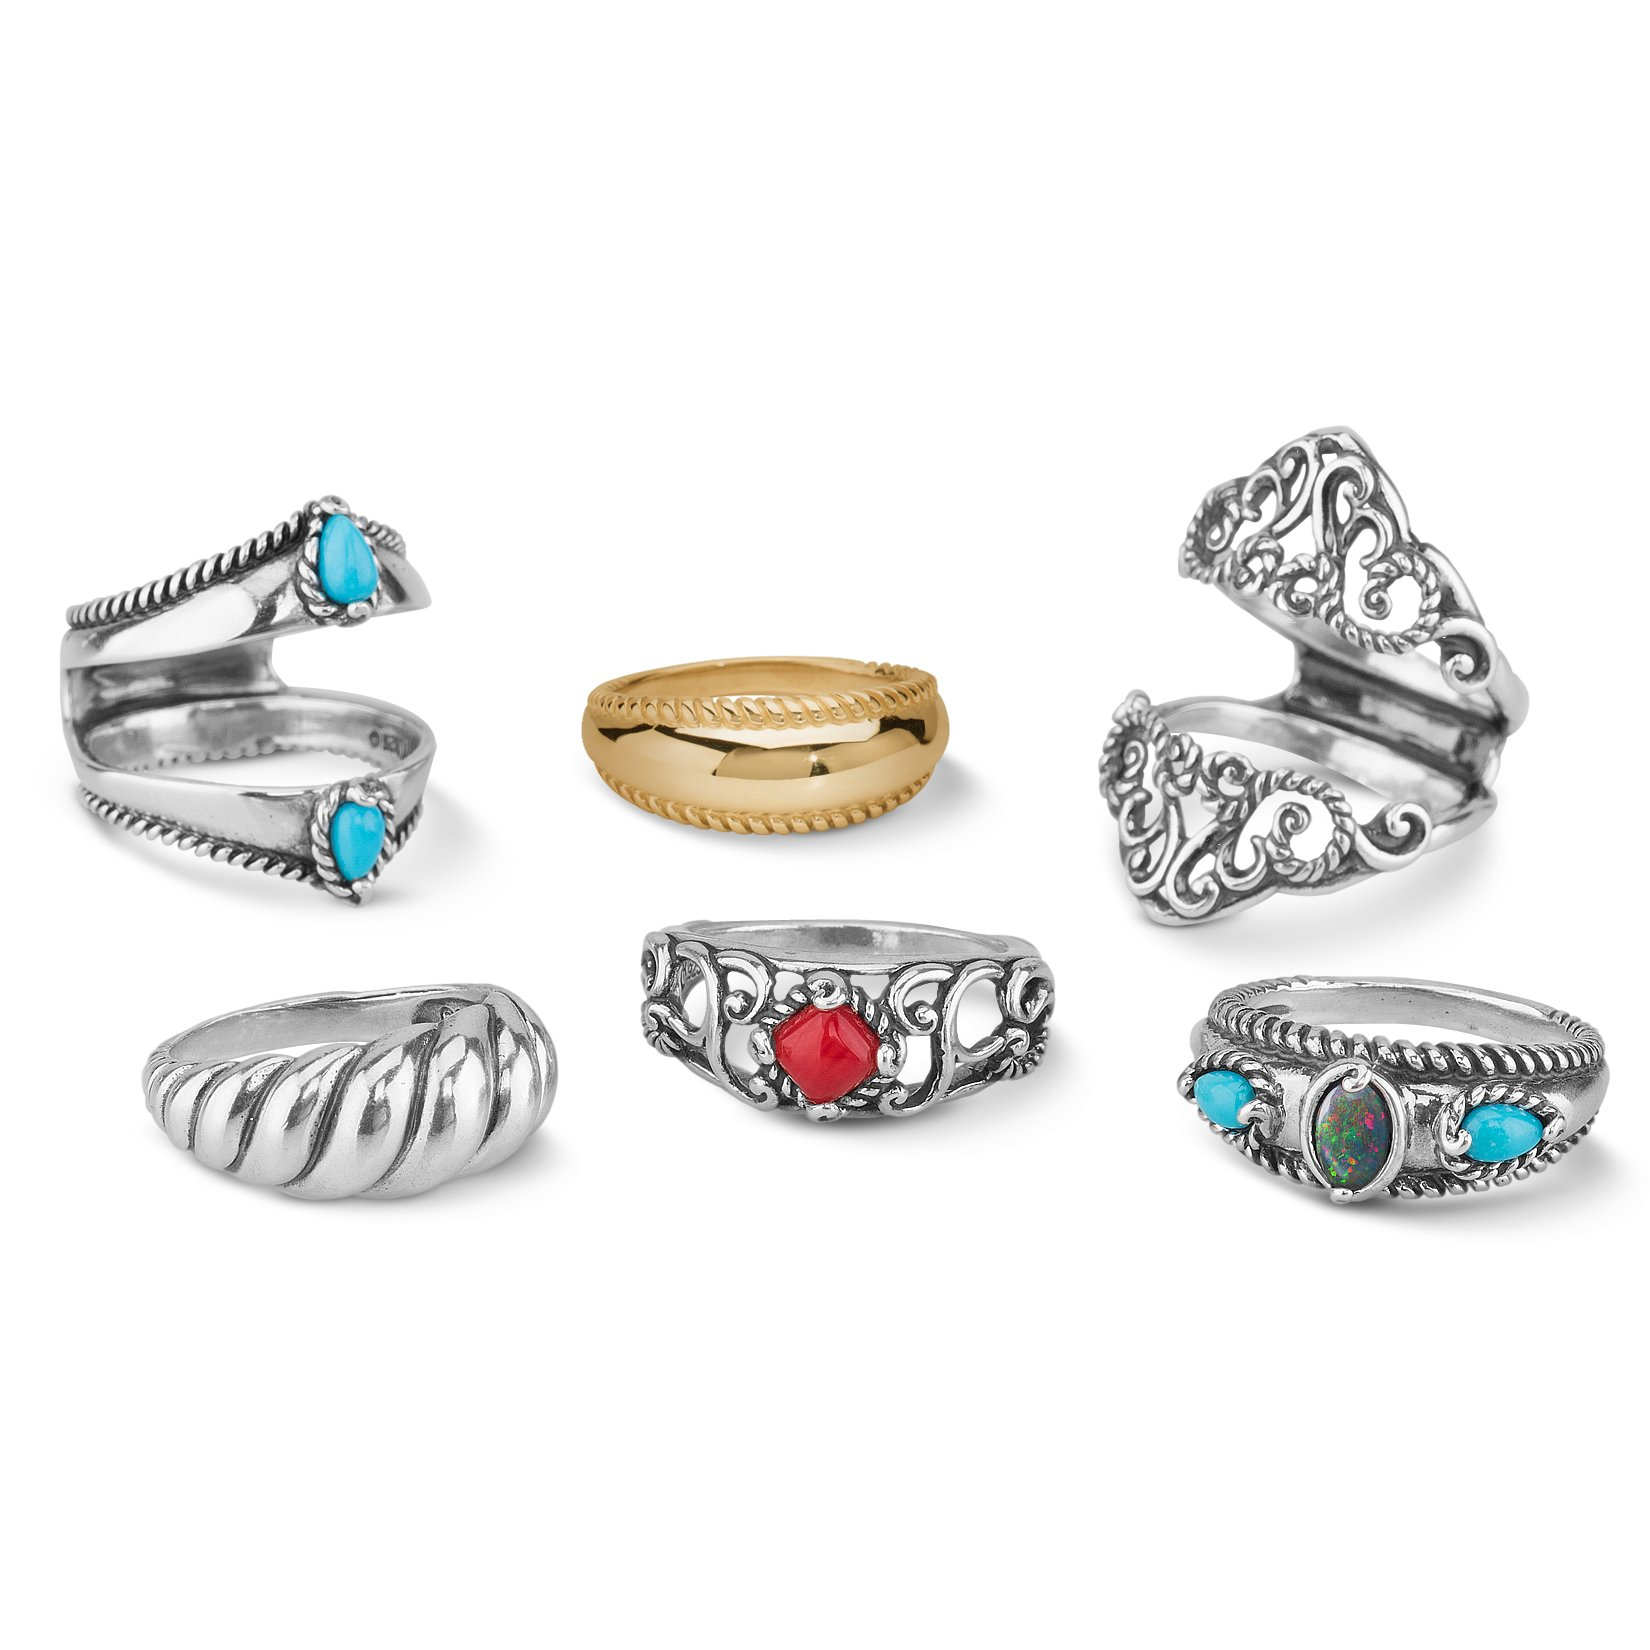 Carolyn Pollack - Sterling Silver, Brass, Turquoise, Red Coral, and Opal 6 Piece Ring Set - Size 10 - Possibilities Collection